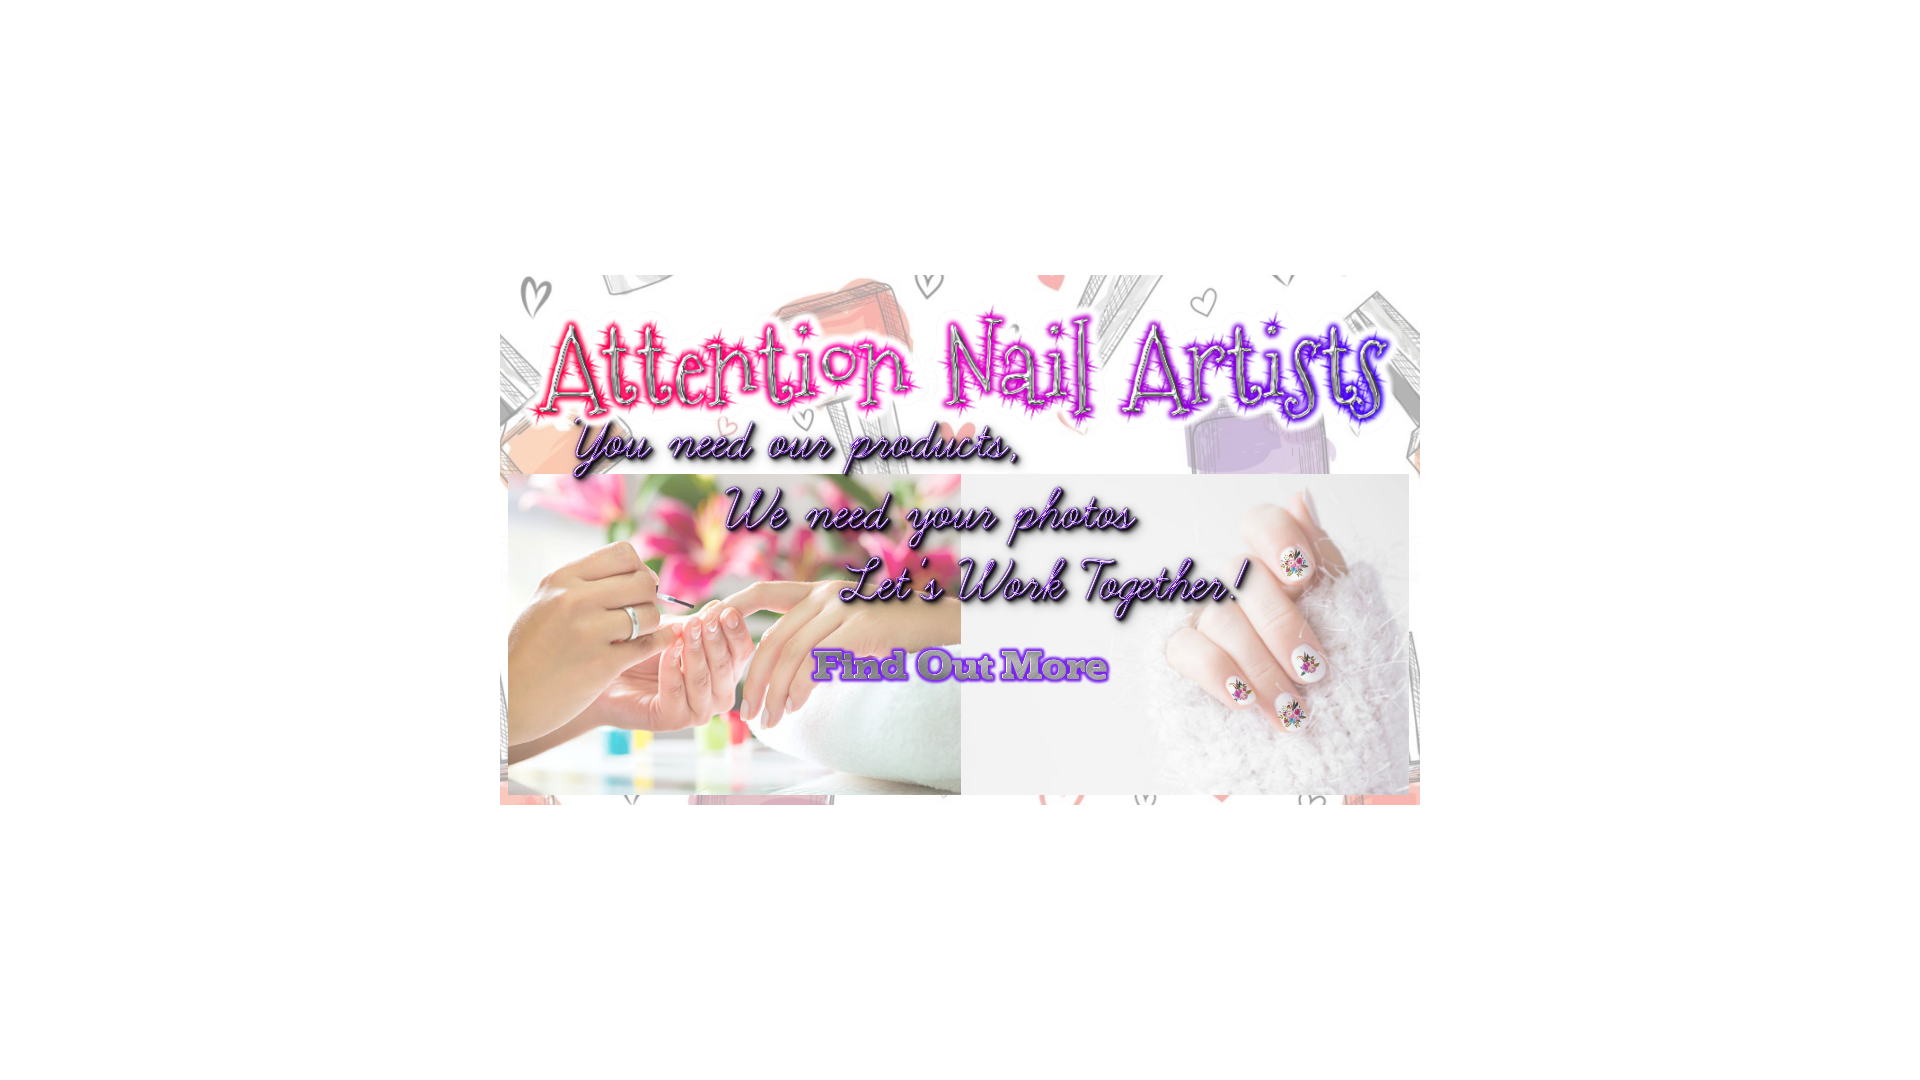 Attention Nail Artists